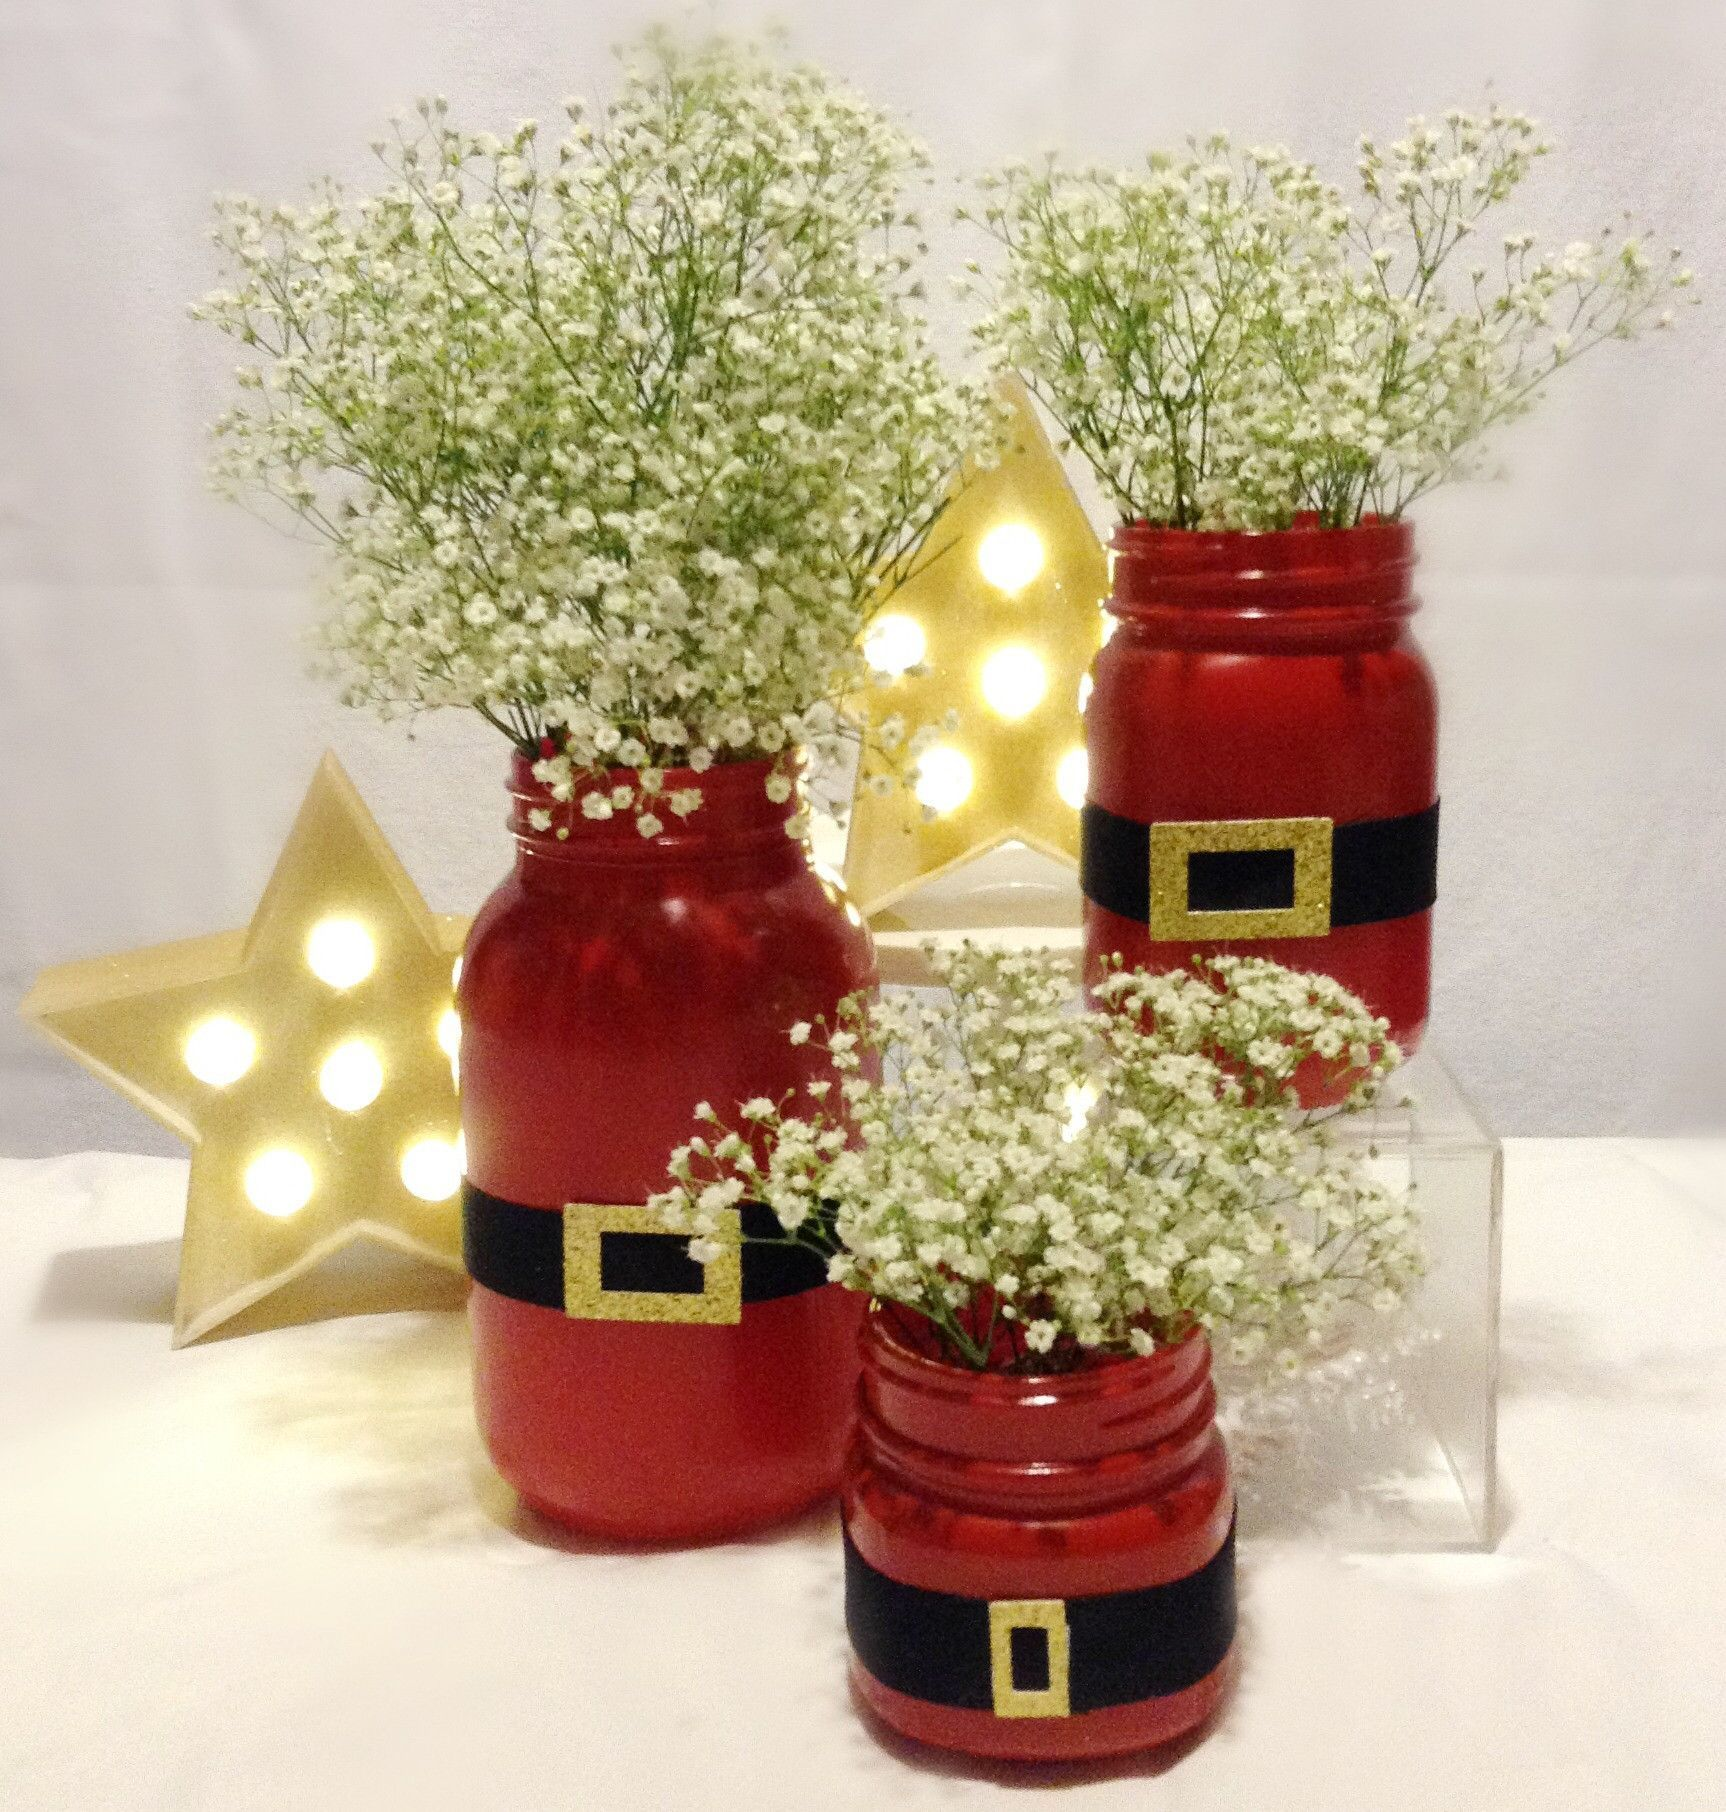 Santa suit mason jar santa suits mason jar christmas and jar santa suit mason jar christmas decoration for officechristmas decorations reviewsmspy